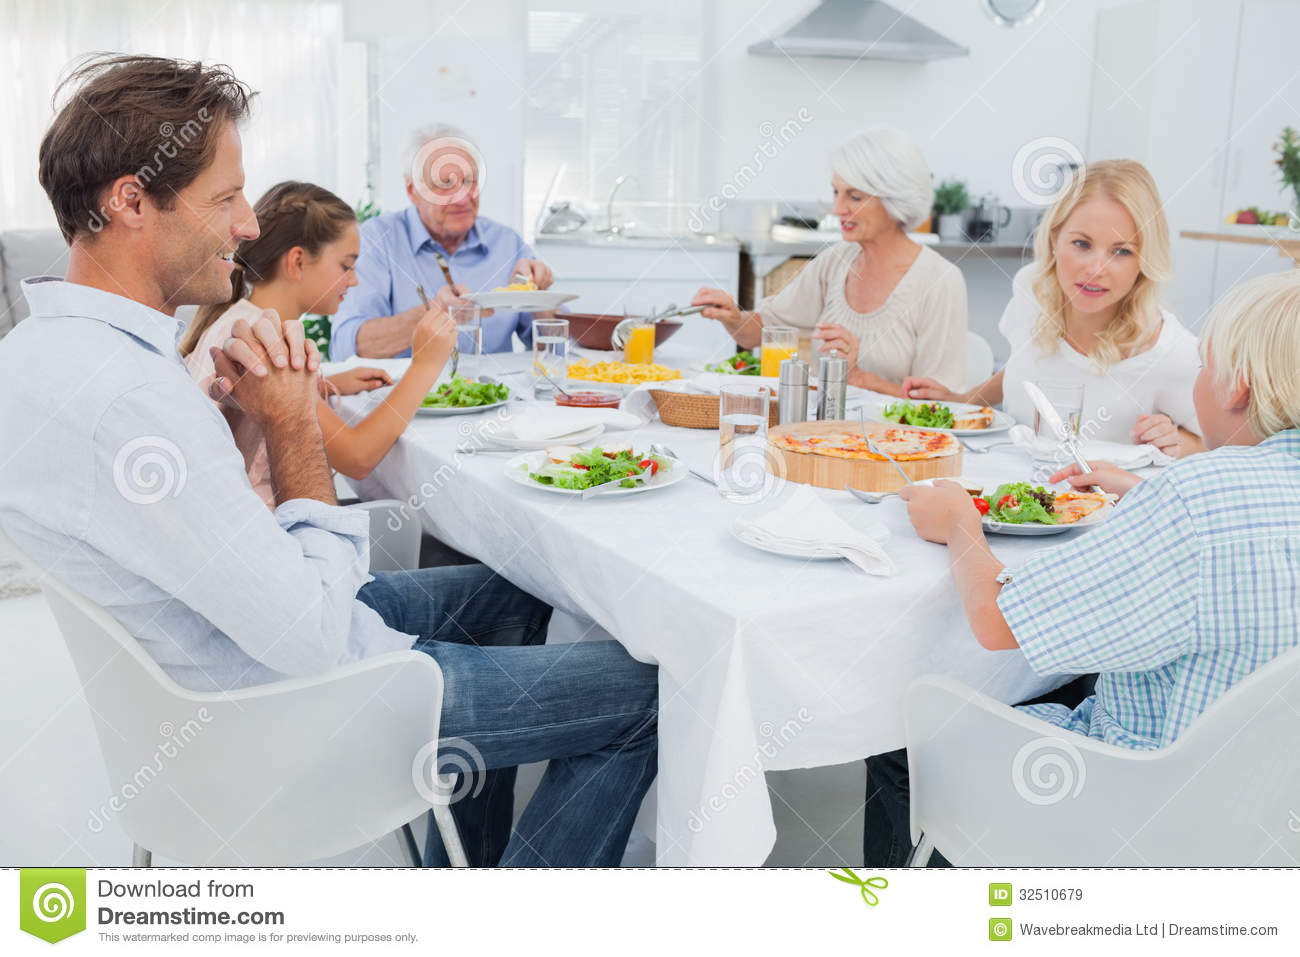 Extended Family At The Dinner Table Royalty Free Stock  : extended family dinner table kitchen 32510679 from www.dreamstime.com size 1300 x 957 jpeg 128kB